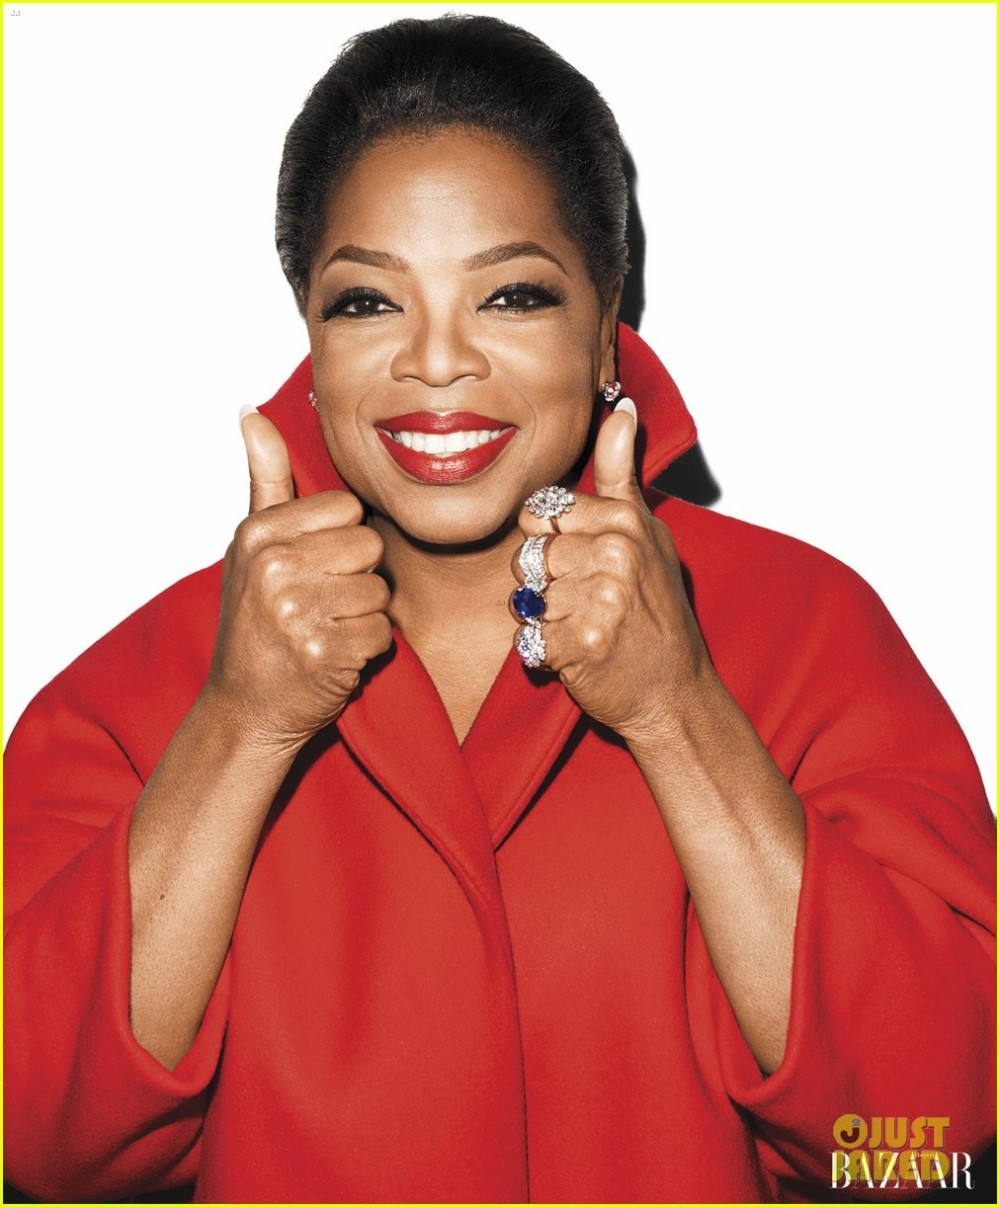 oprah-winfrey-owns-it-for-harpers-bazaar-03